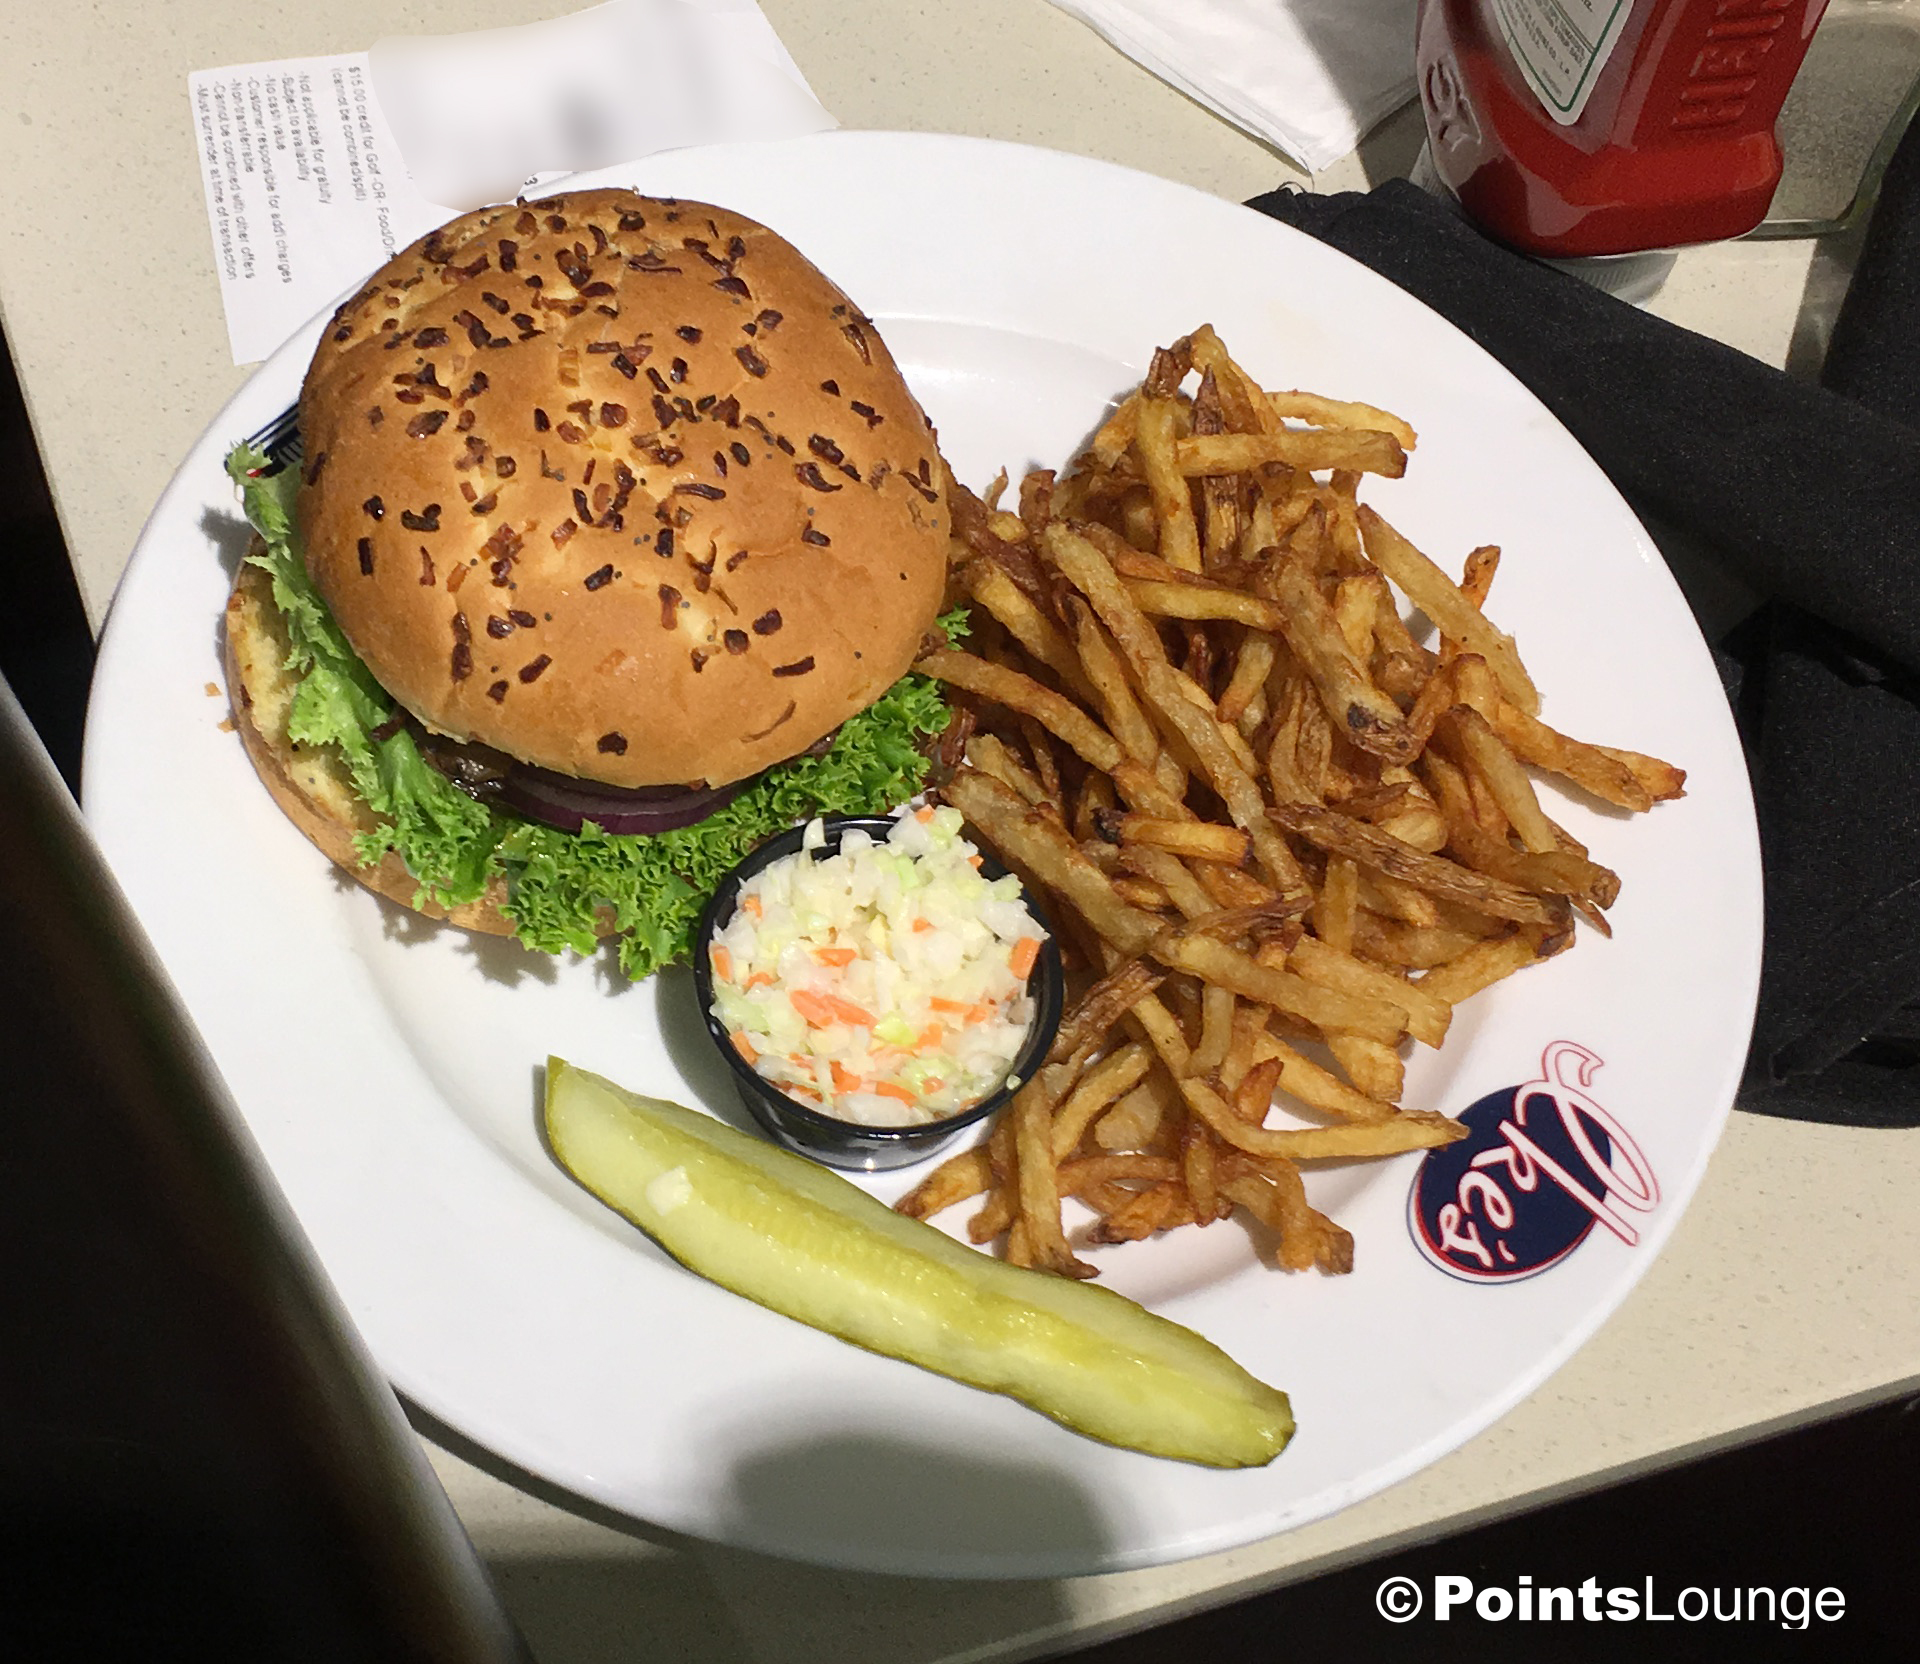 A view of Ike's Wine Soaked Mushroom and Swiss Burger from the Champions' Grille inside the PGA MSP golf-themed airport lounge at the Minneapolis-St. Paul International Airport. One of the ways the lounge can be accessed is with Priority Pass membership. (Click for a larger image.)